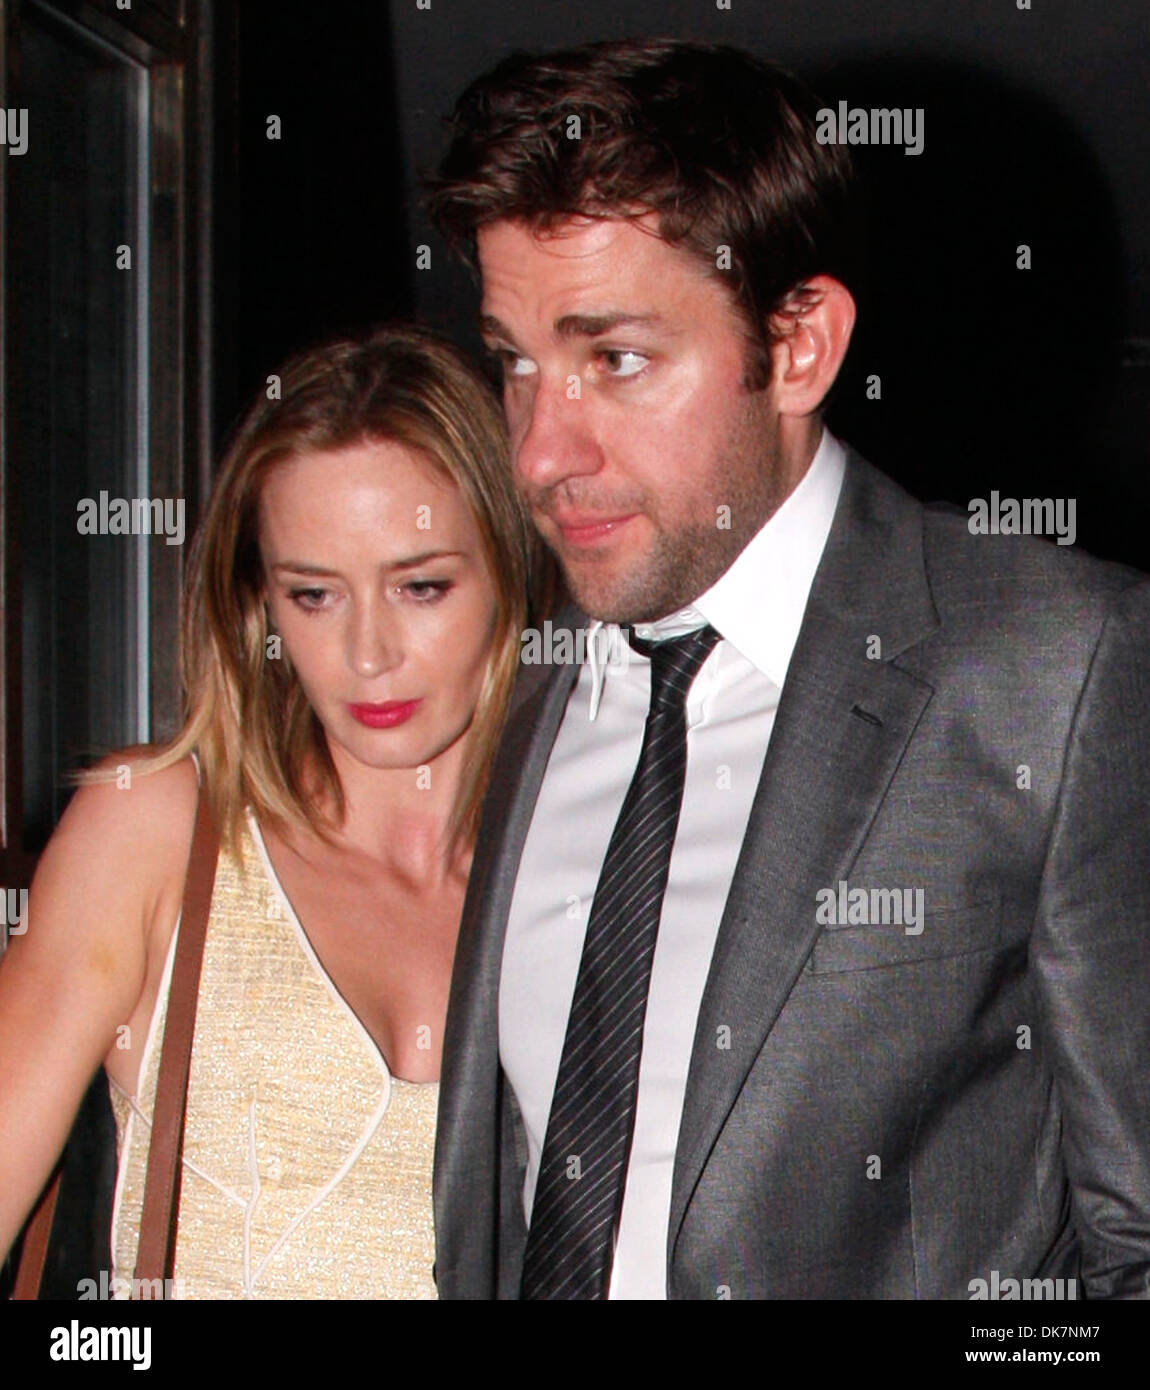 John Krasinski Emily Blunt Wedding.John Krasinski And Emily Blunt Attend Stanley Tucci And